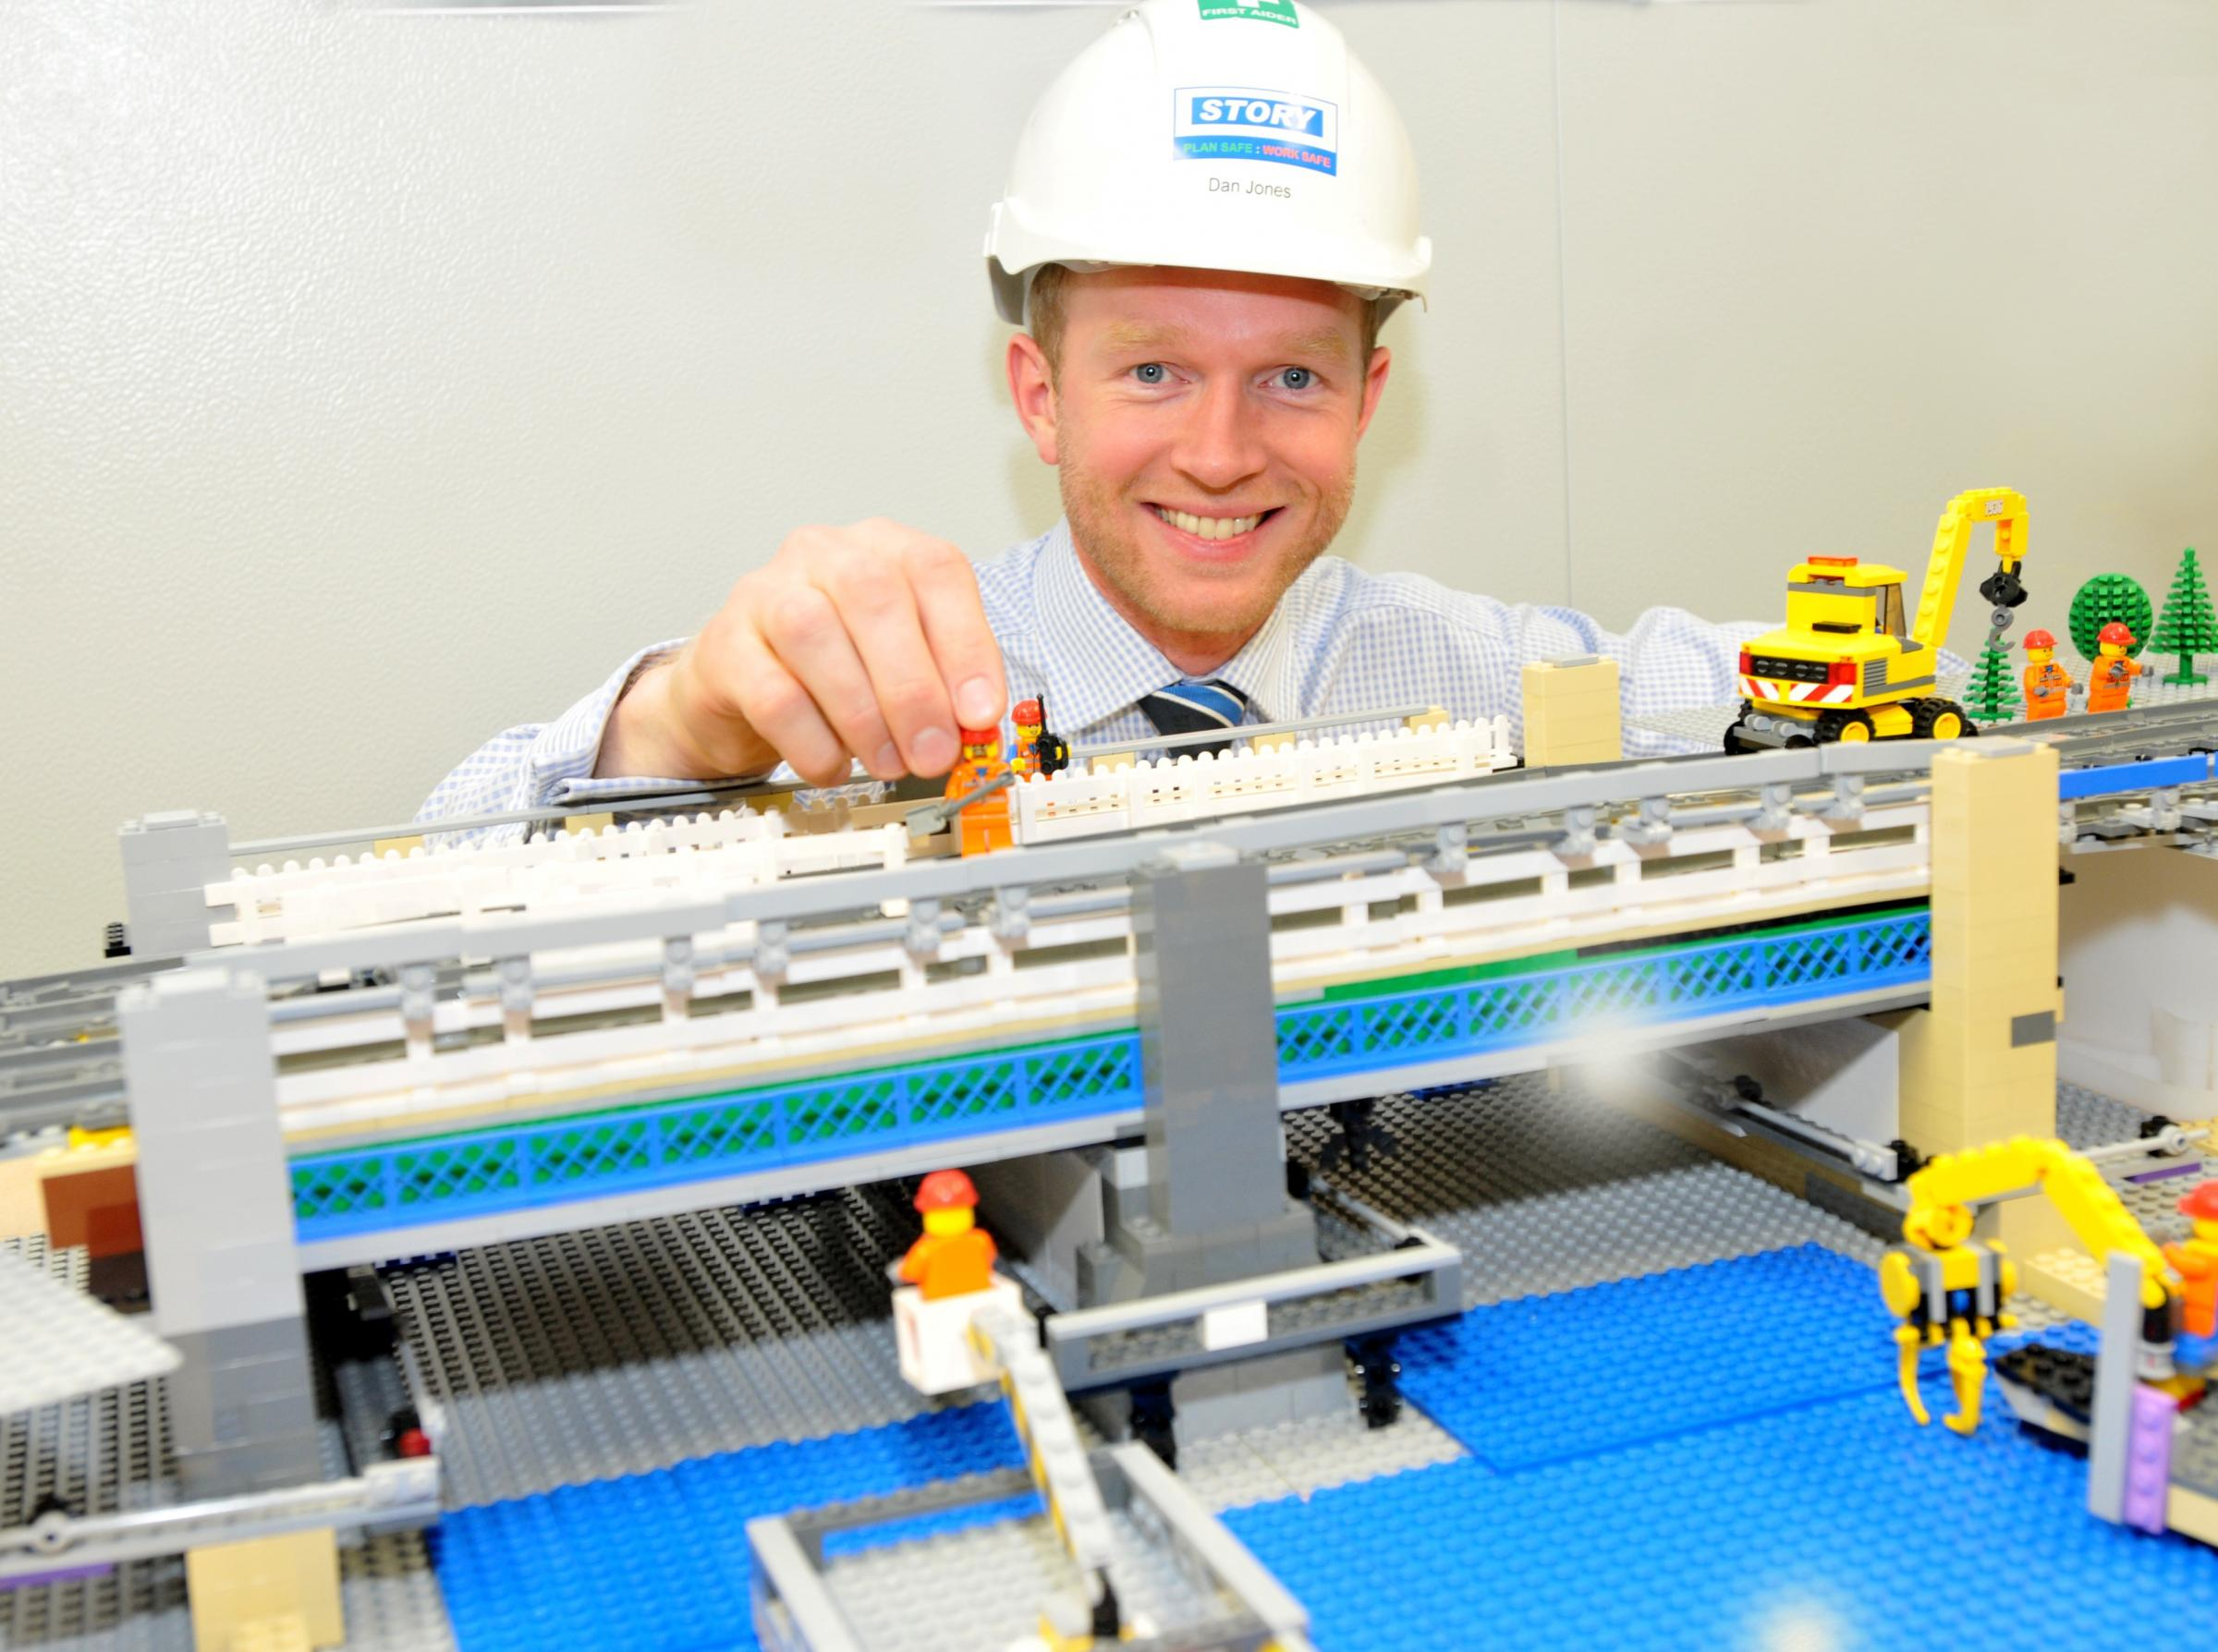 Rail engineers create Lego model to show how Scarborough Bridge will     Rail engineers create Lego model to show how Scarborough Bridge will look  after renovation